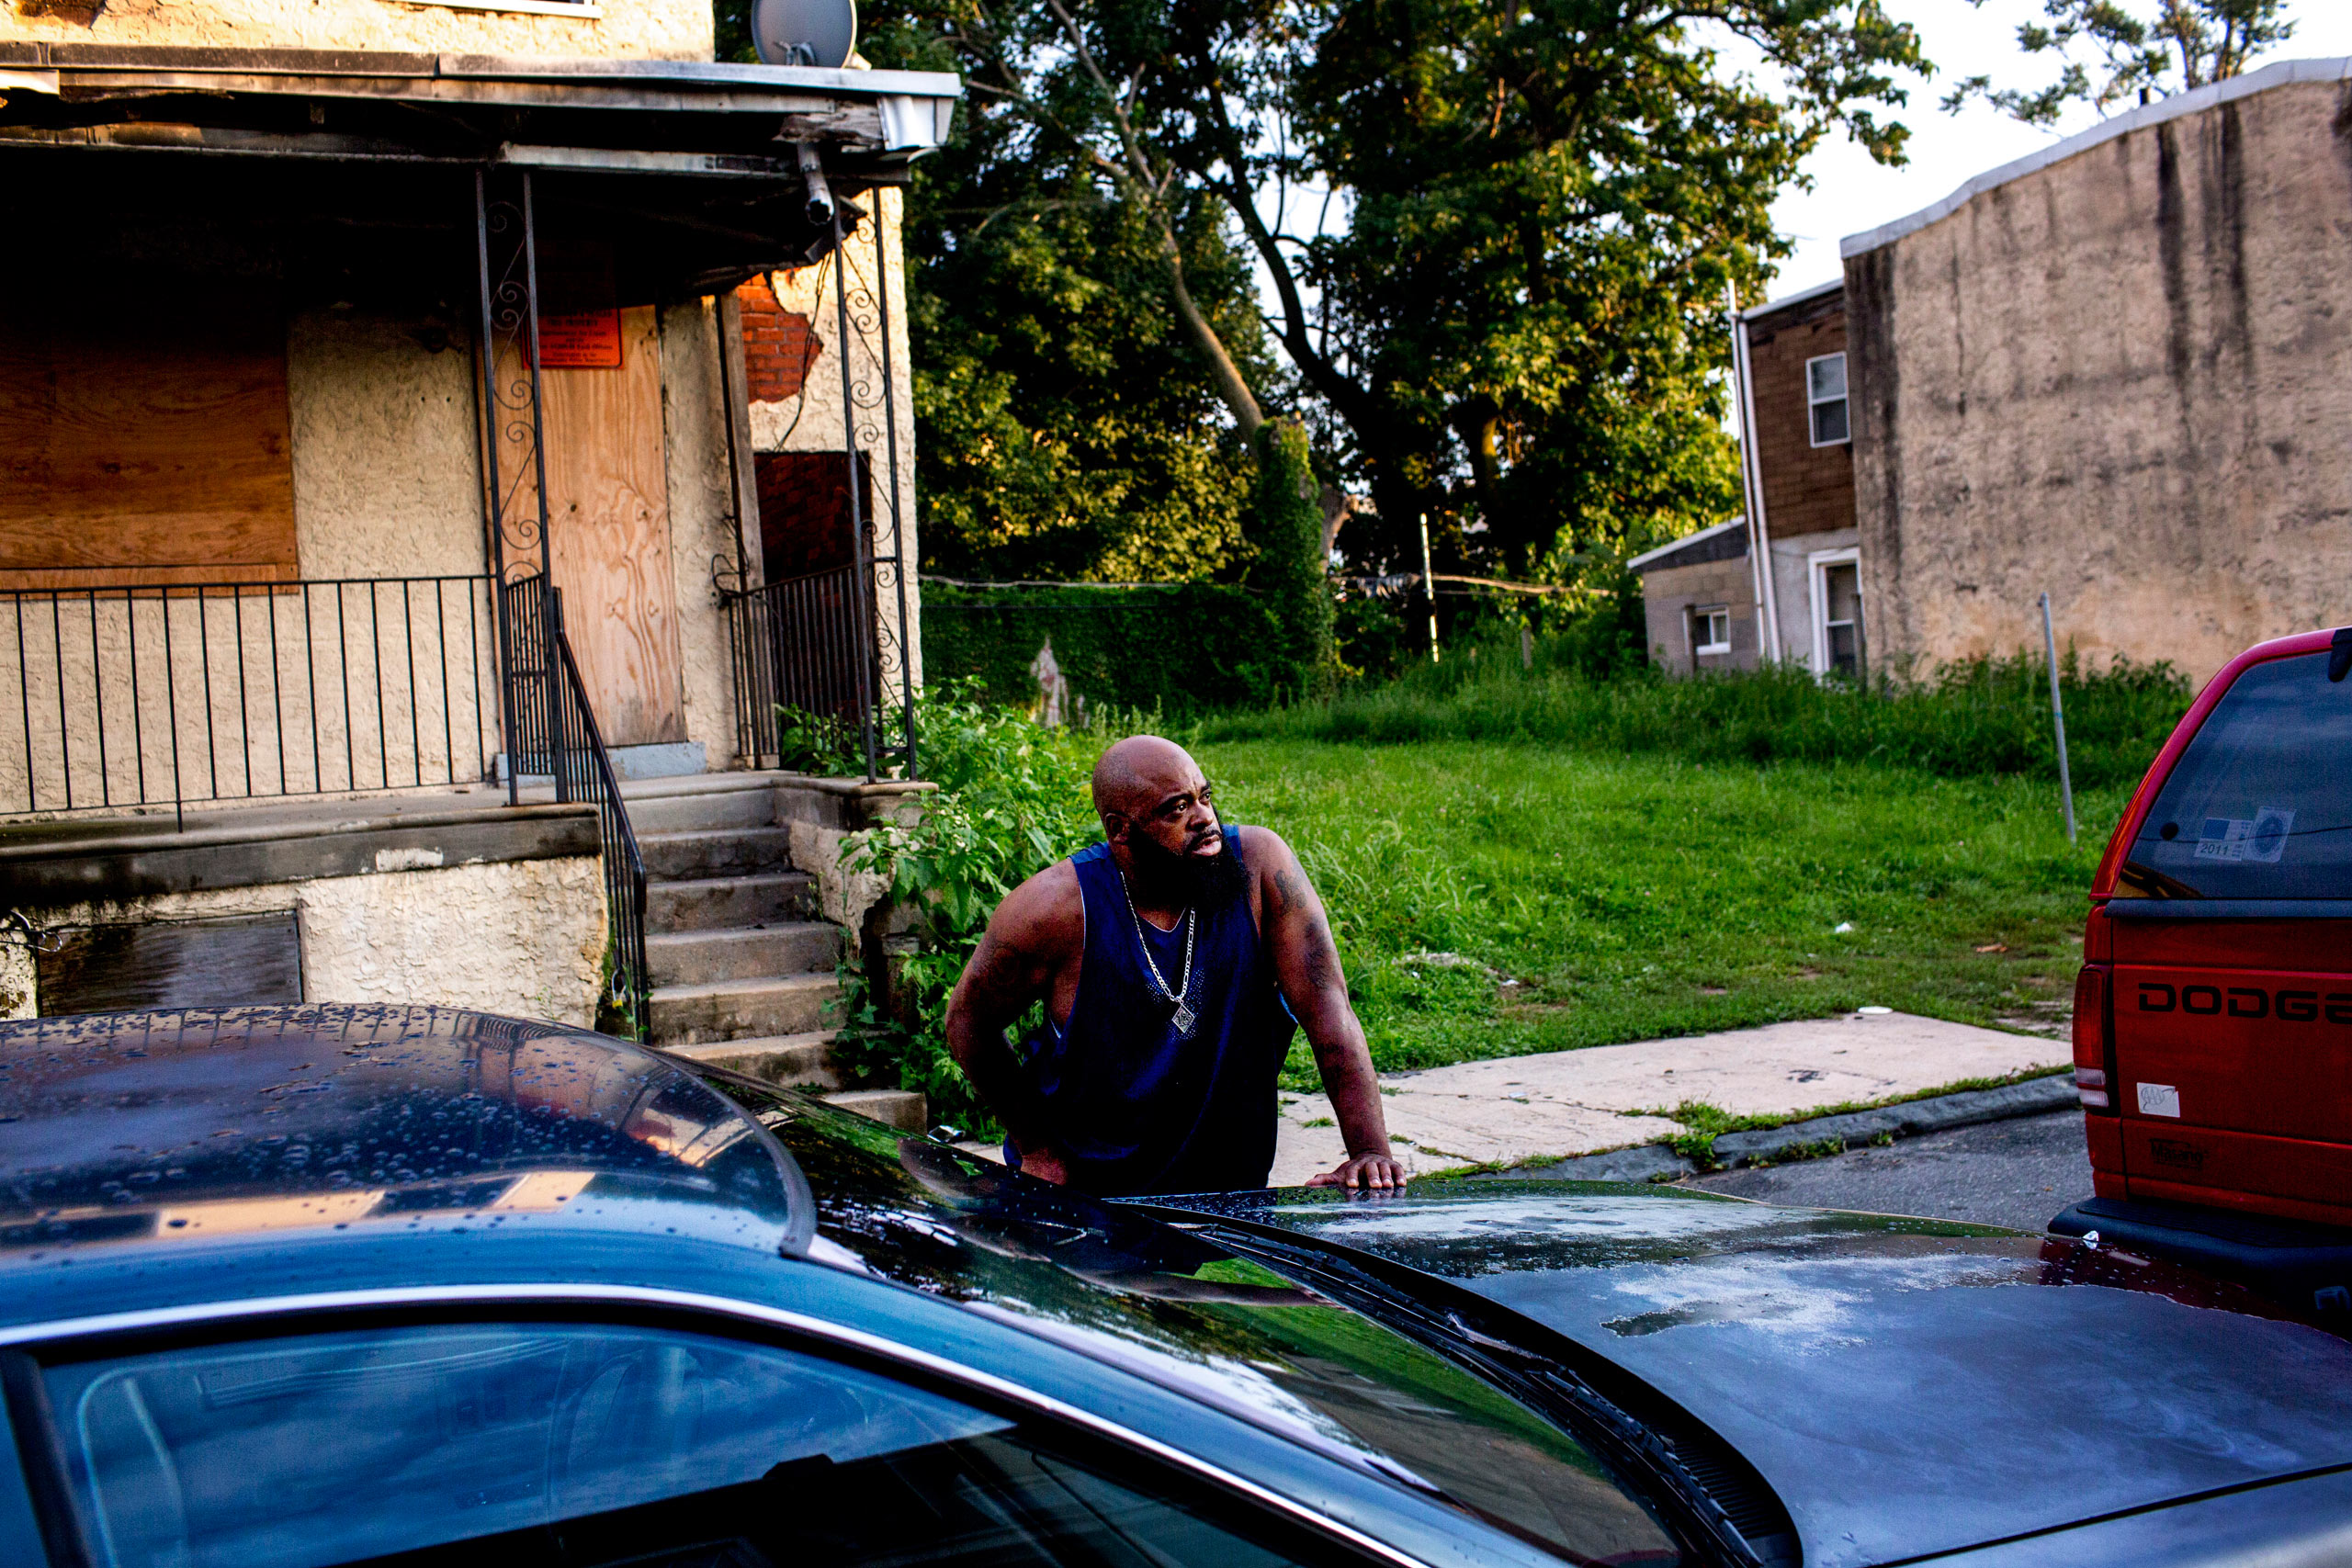 A neighbor watches as officers search the scene for shell casings after reports of a man shooting off a shotgun to threaten him from his porch. As no one heard shots and there were no casings, police suspected the man had brandished the weapon but not fired it. July 30, 2015. Philadelphia, Pa.